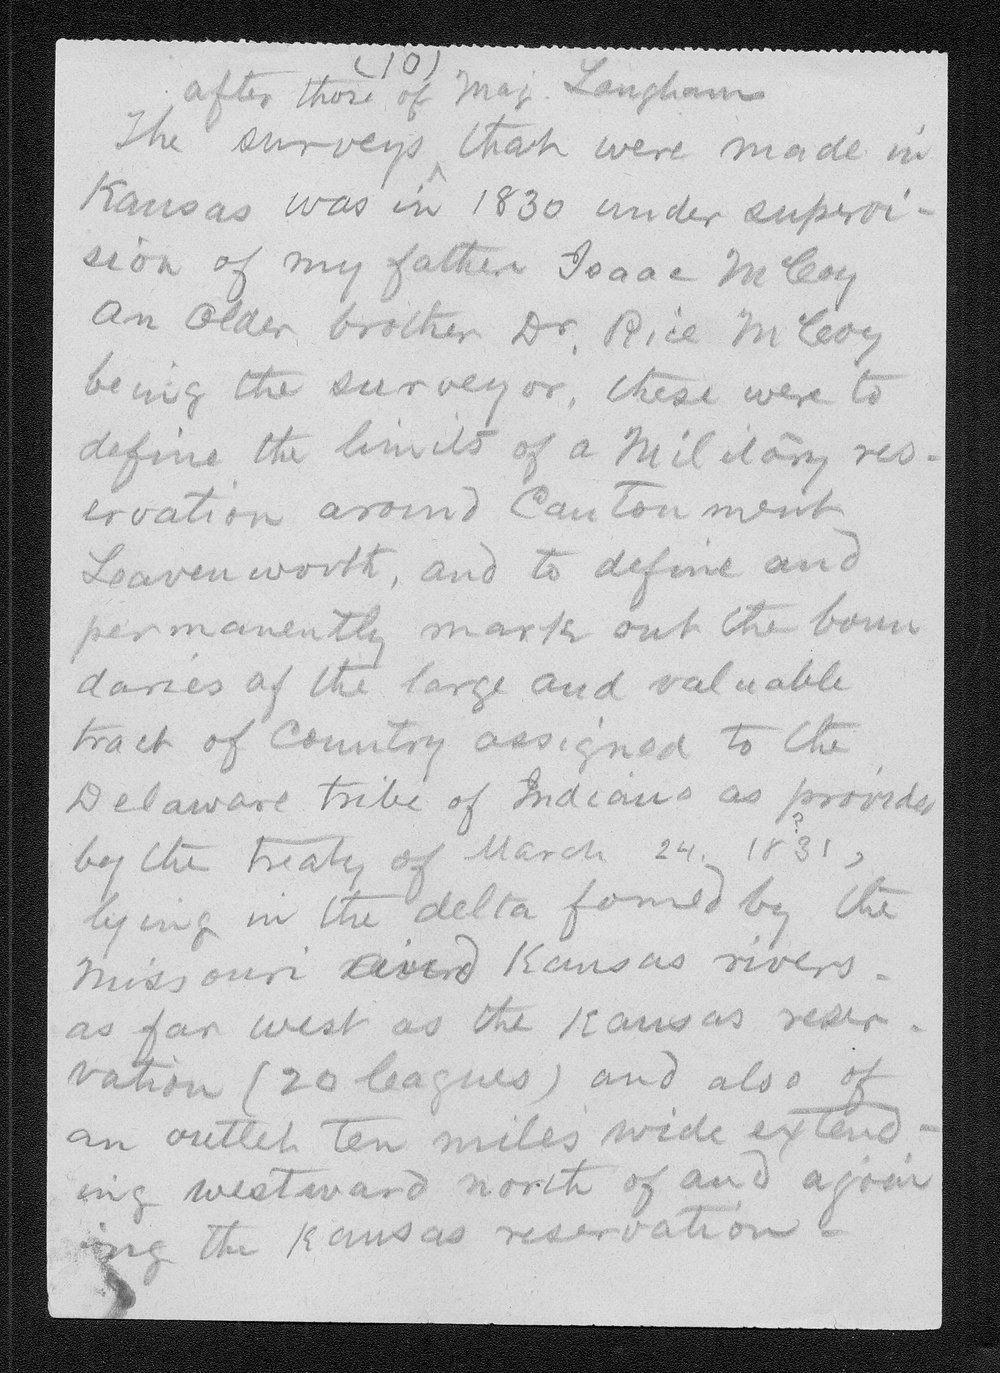 John C. McCoy to Franklin G. Adams - 10